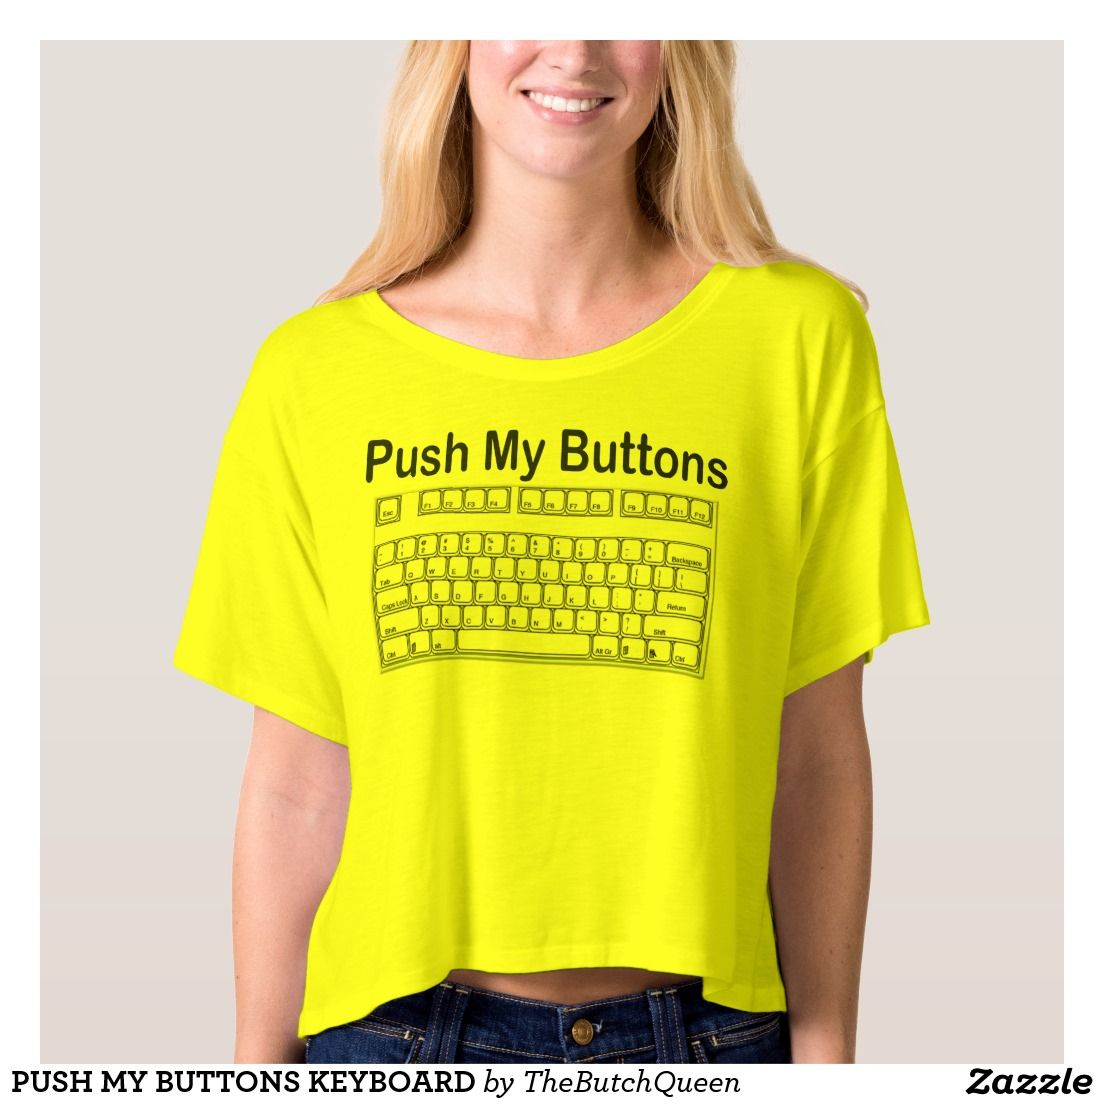 4ce9587cdf82 PUSH MY BUTTONS KEYBOARD T-SHIRT. PUSH MY BUTTONS KEYBOARD. HOW TO GET FELT  UP. SECOND BASE SHIRT. LEARN TO TYPE ON ME. PURPLE NURPLE. TIDDY TWISTER.